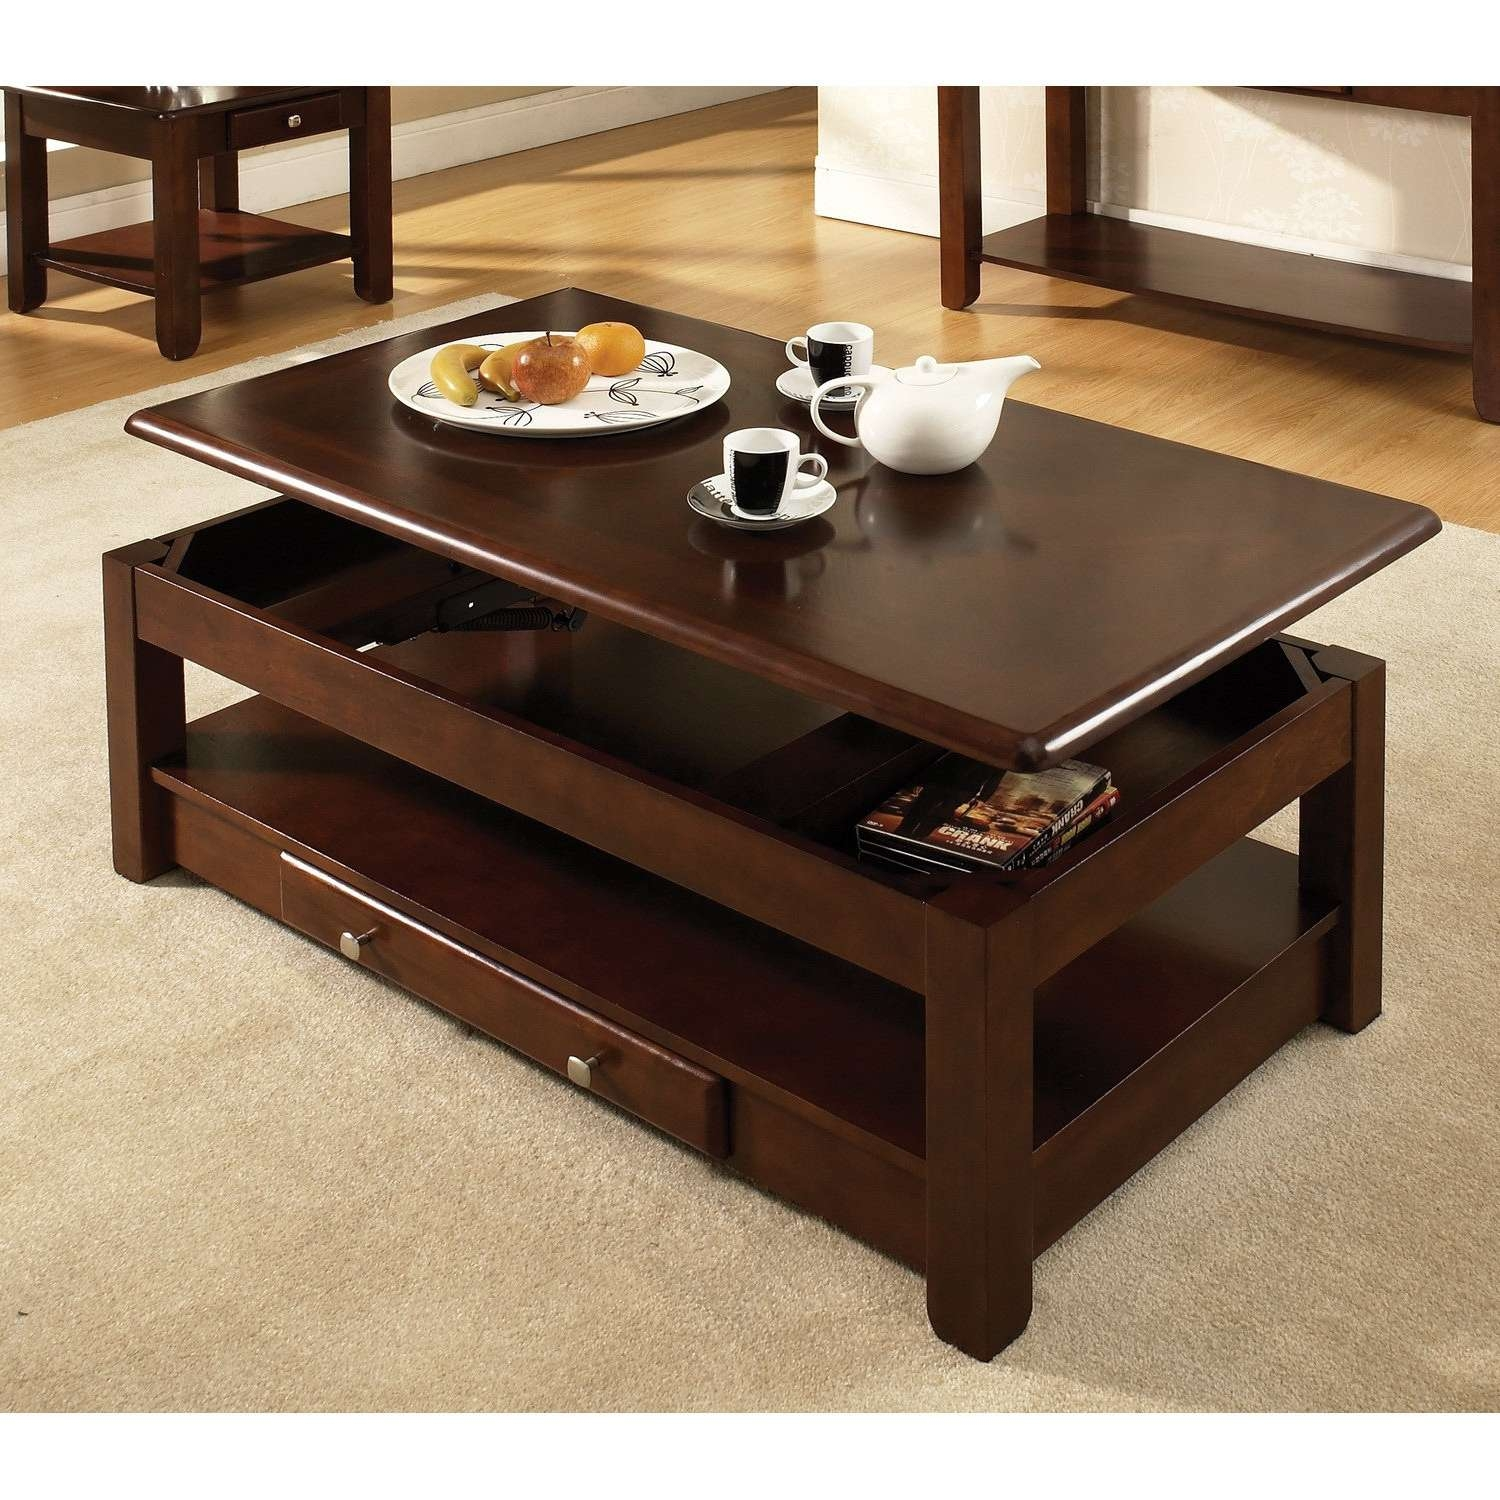 Favorite Square Dark Wood Coffee Table Intended For Square Dark Wood Coffee Table Luxury Coffee Tables Coffee Table (View 13 of 20)